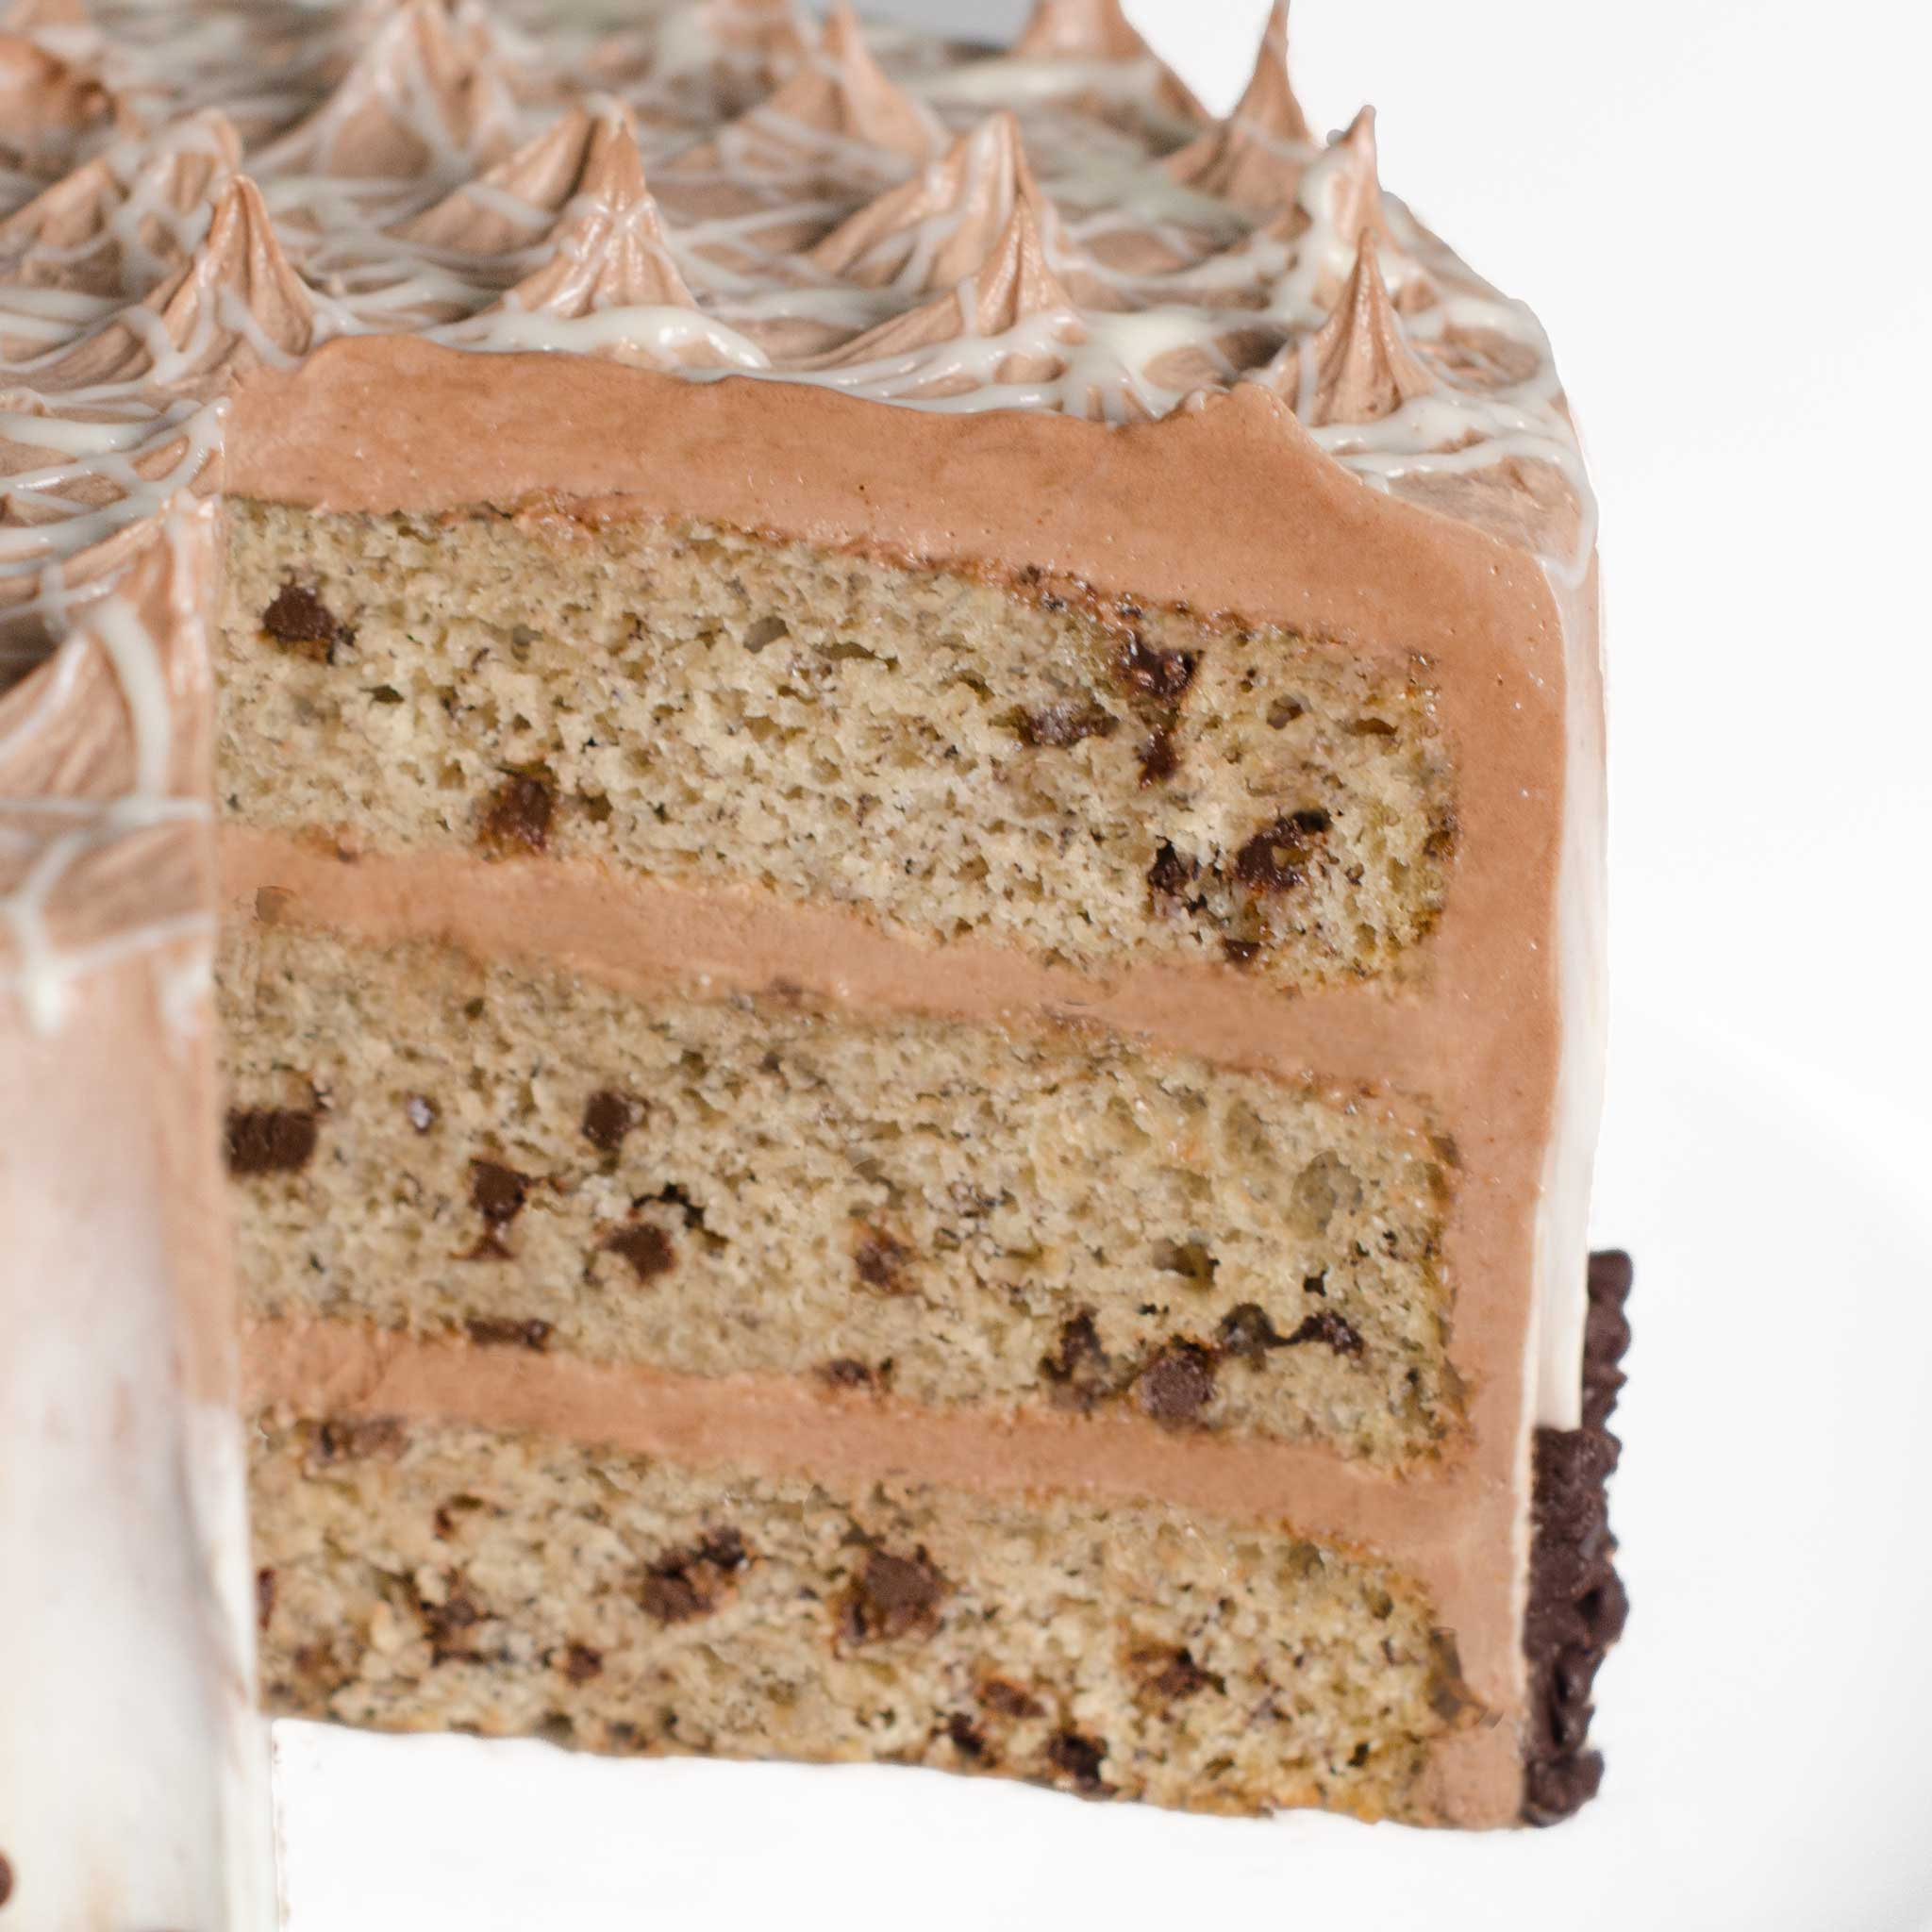 La-Rocca-Chocolate-Chip-Banana-Cake-8-in-Detail